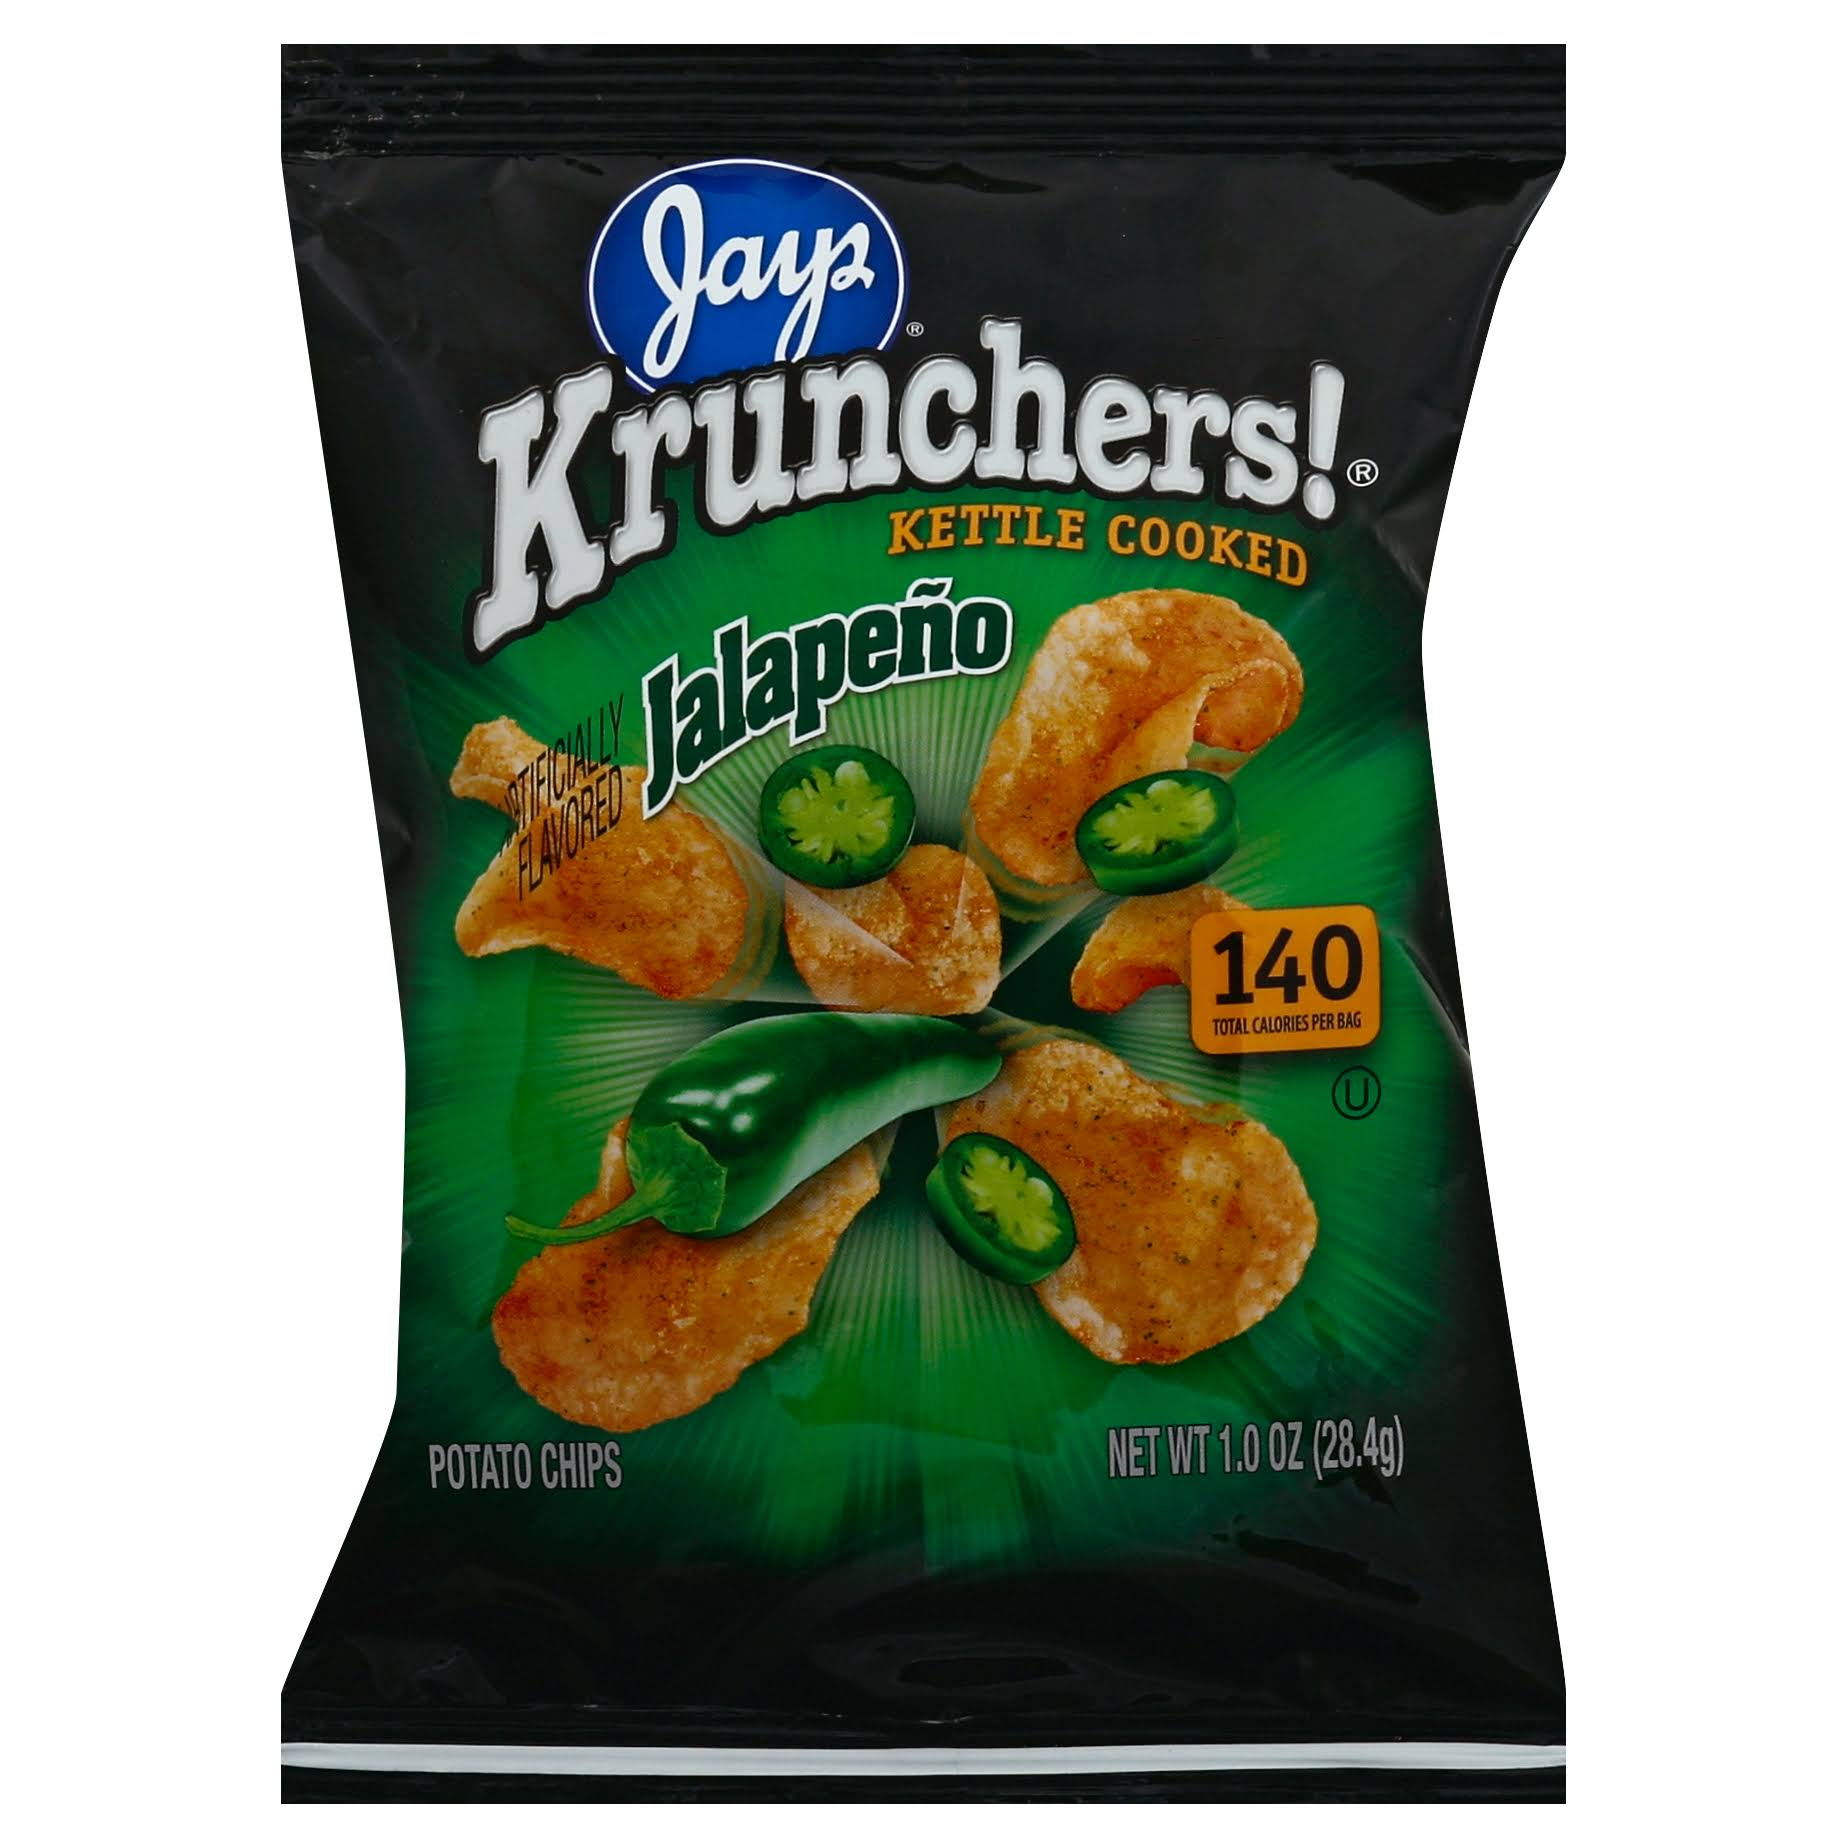 Krunchers Kettle Cooked Potato Chips - Jalapeno